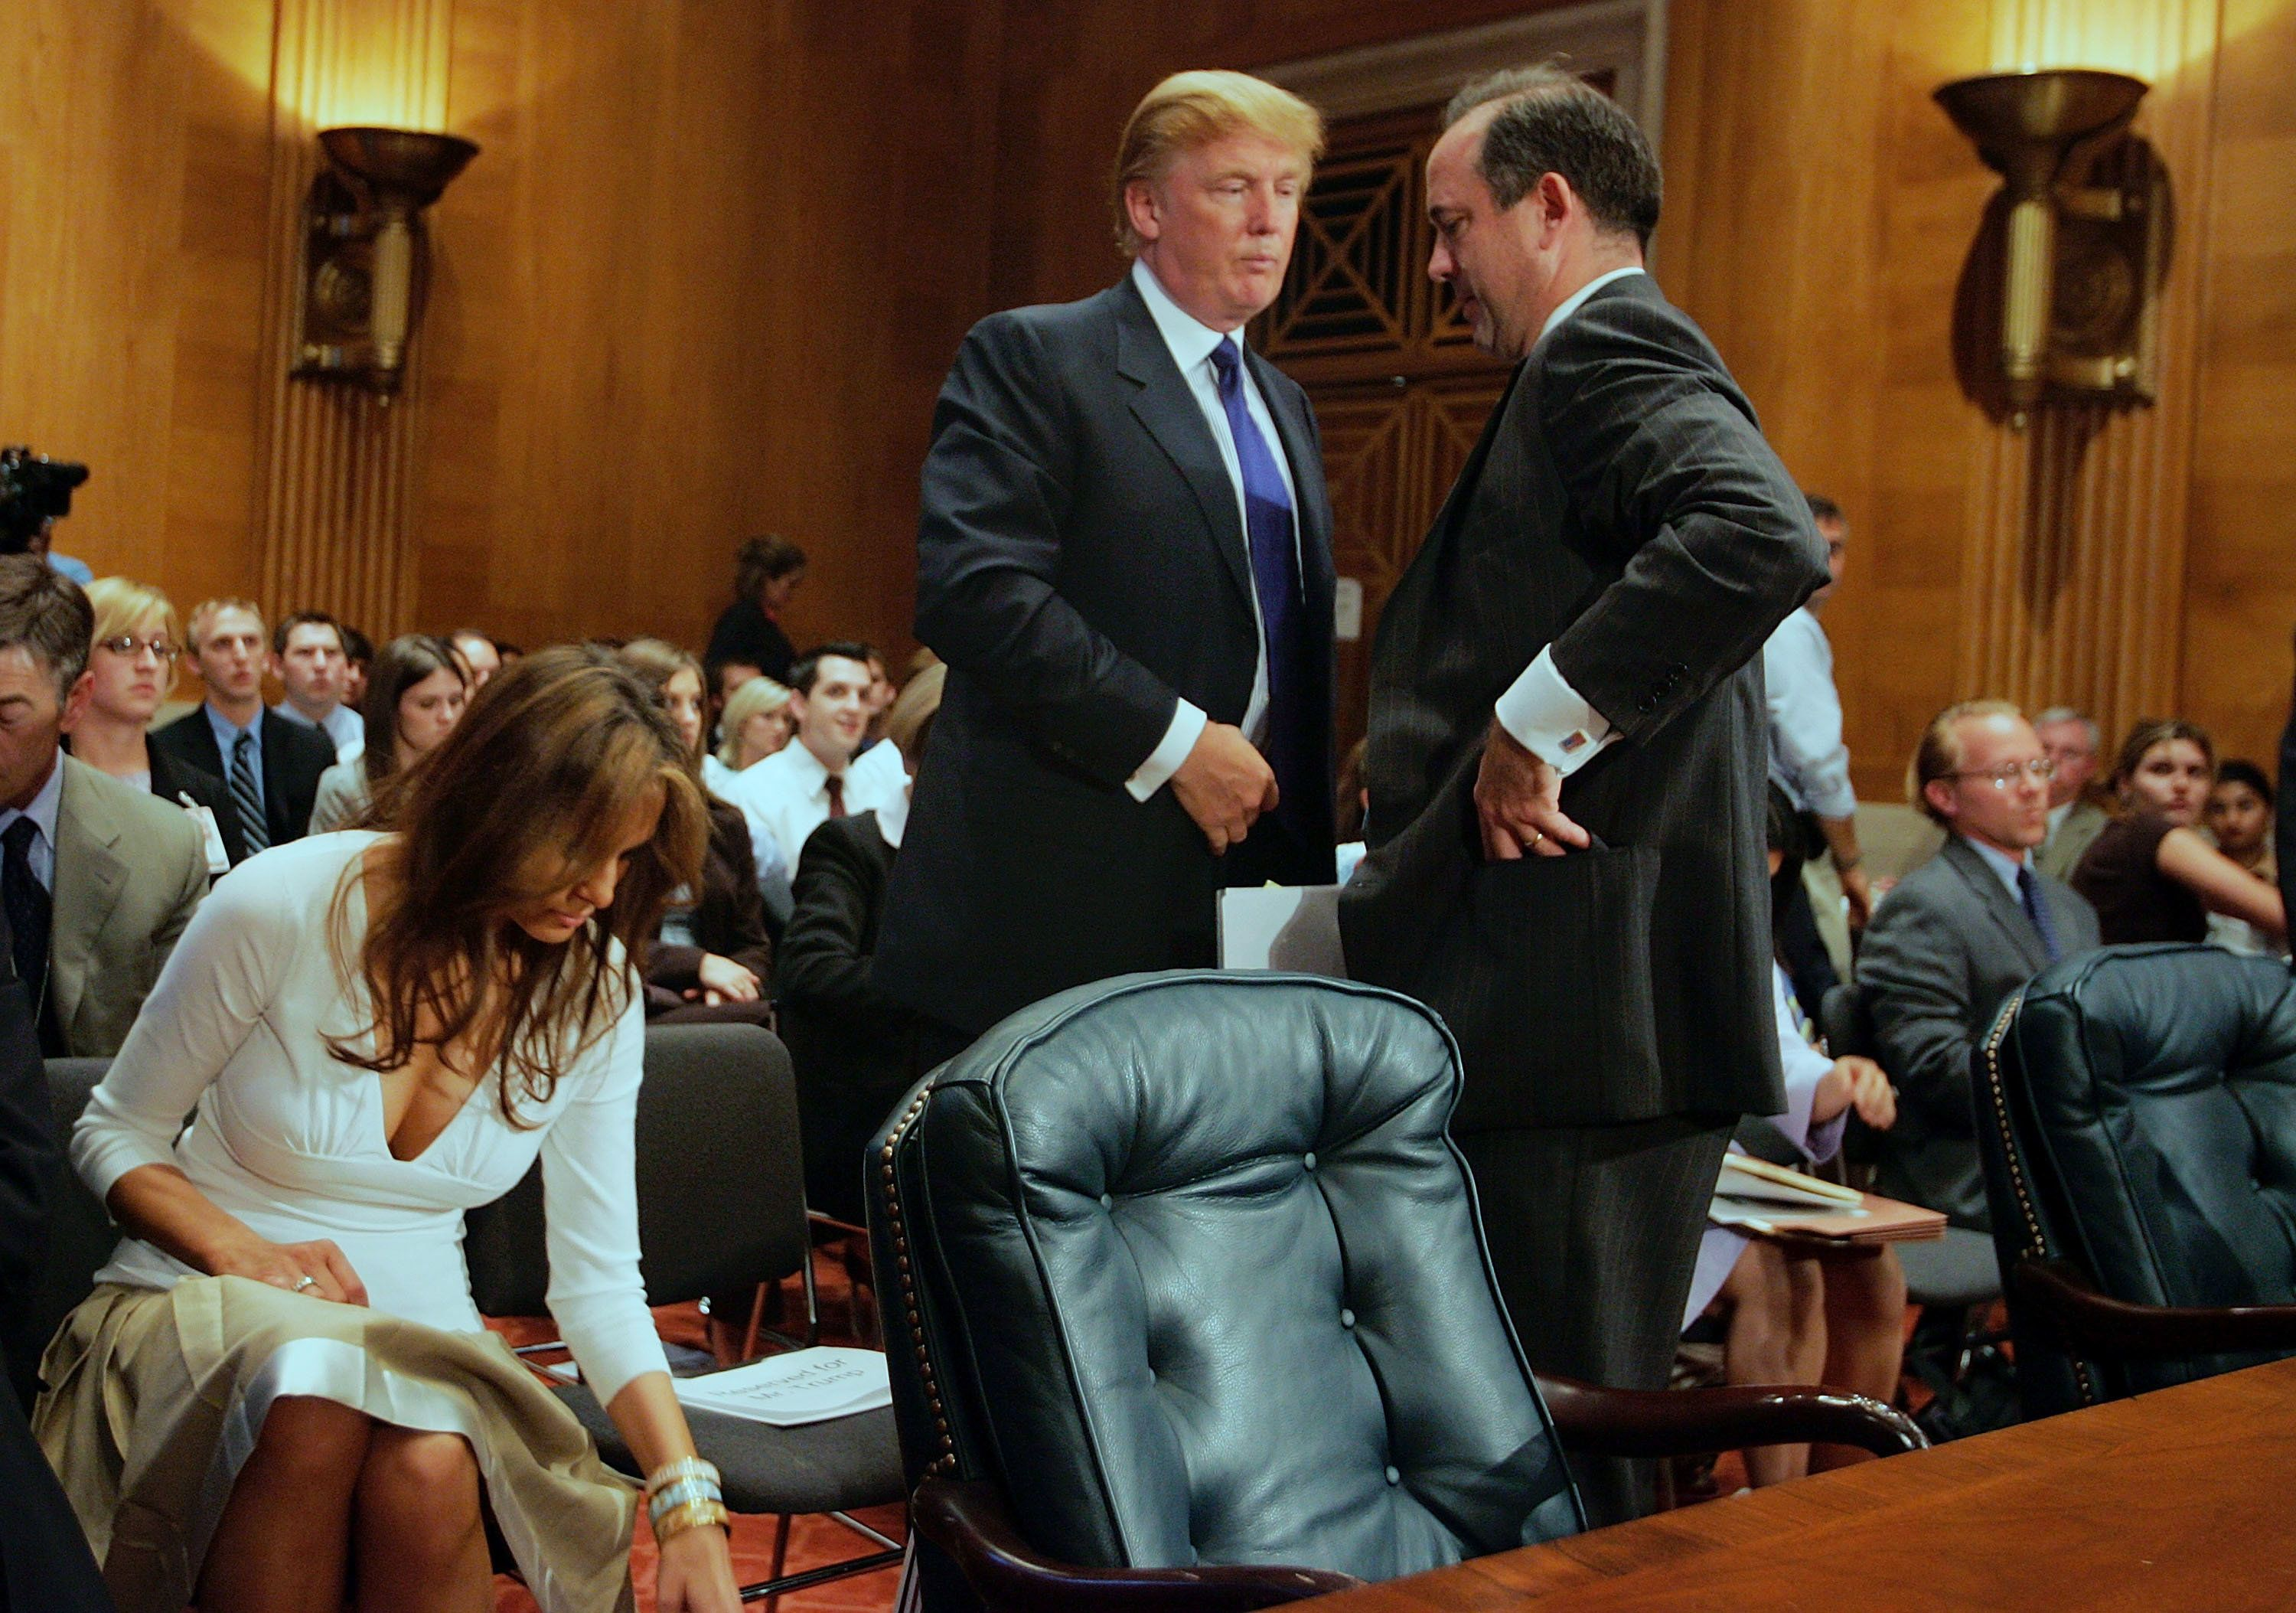 WASHINGTON - JULY 21:  Donald Trump (L), president of the Trump Organization, talks to Christopher Burnham (R), undersecretary general of the Department of Management at the United Nations, after Trump testified before the Federal Financial Management, Government Information, and International Security Subcommittee Capitol Hill July 21, 2005 in Washington, DC. Trump's wife Melania Trump is seated at left. The hearing was held on the topic of 'U.S. Financial Involvement in Renovation of UN Headquarters.'  (Photo by Joe Raedle/Getty Images)